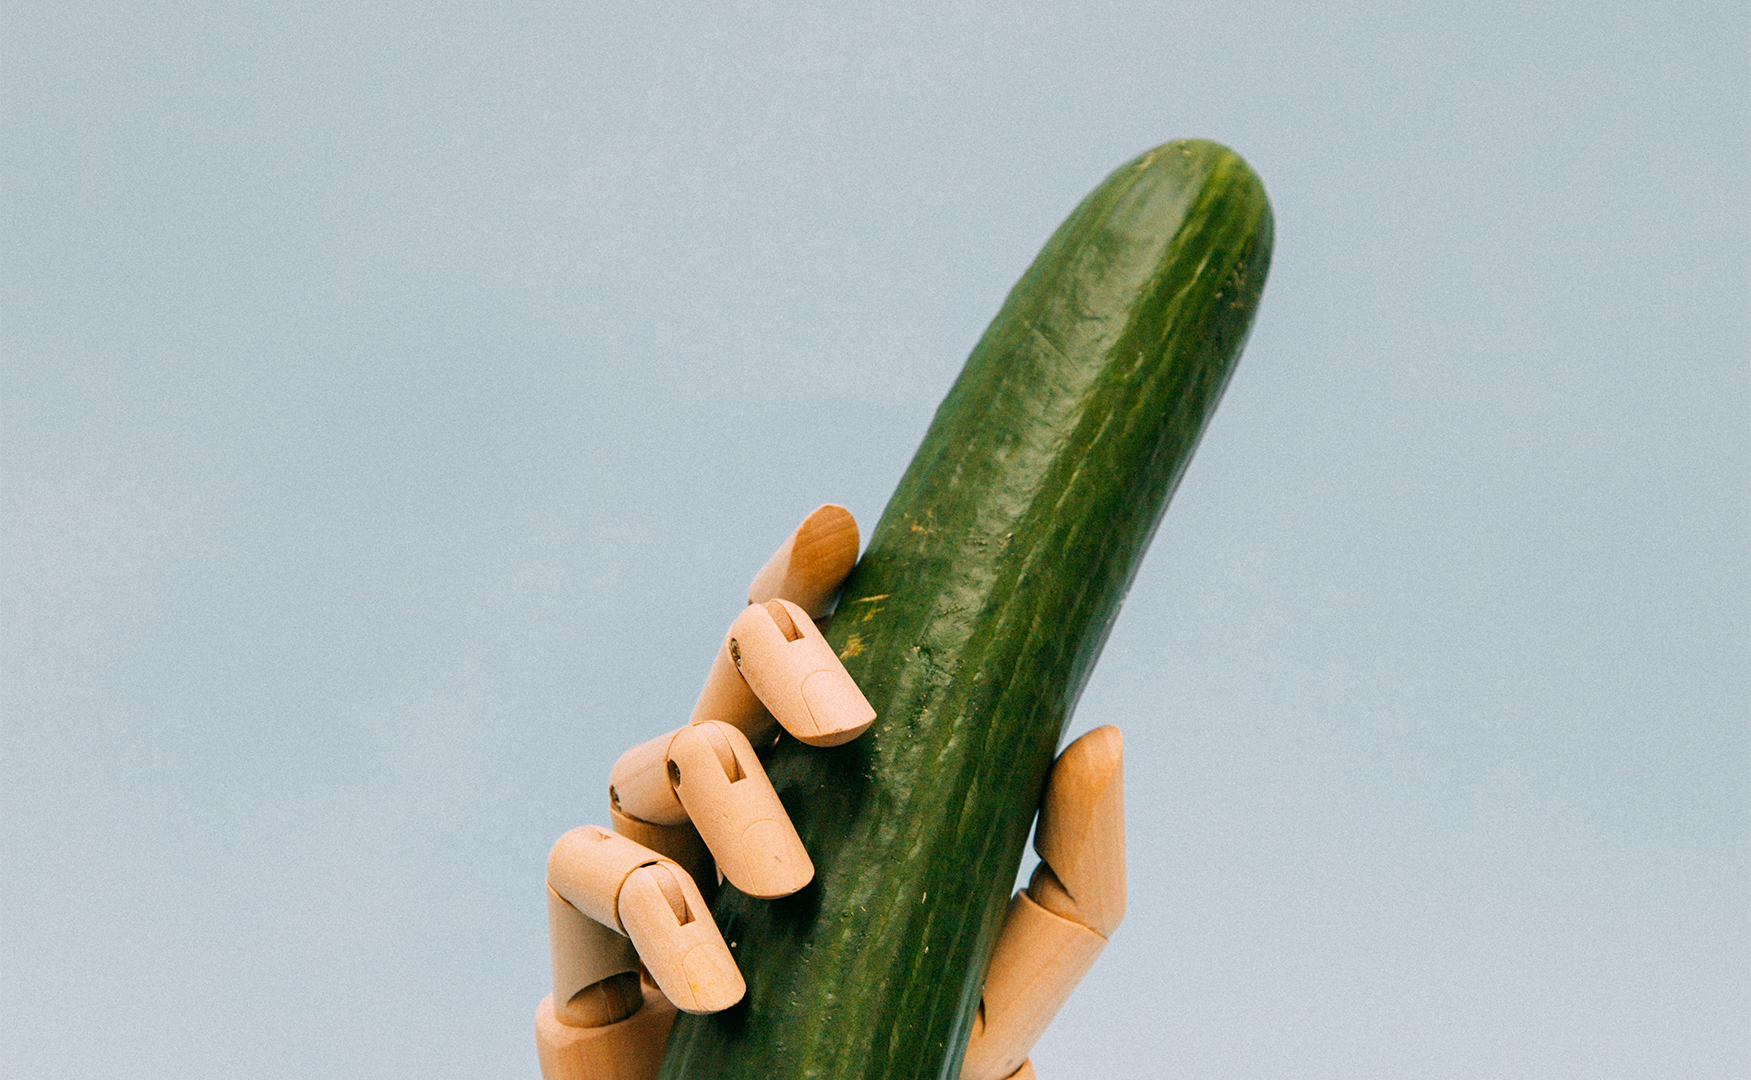 DIY Sex Toys Made From Household Objects